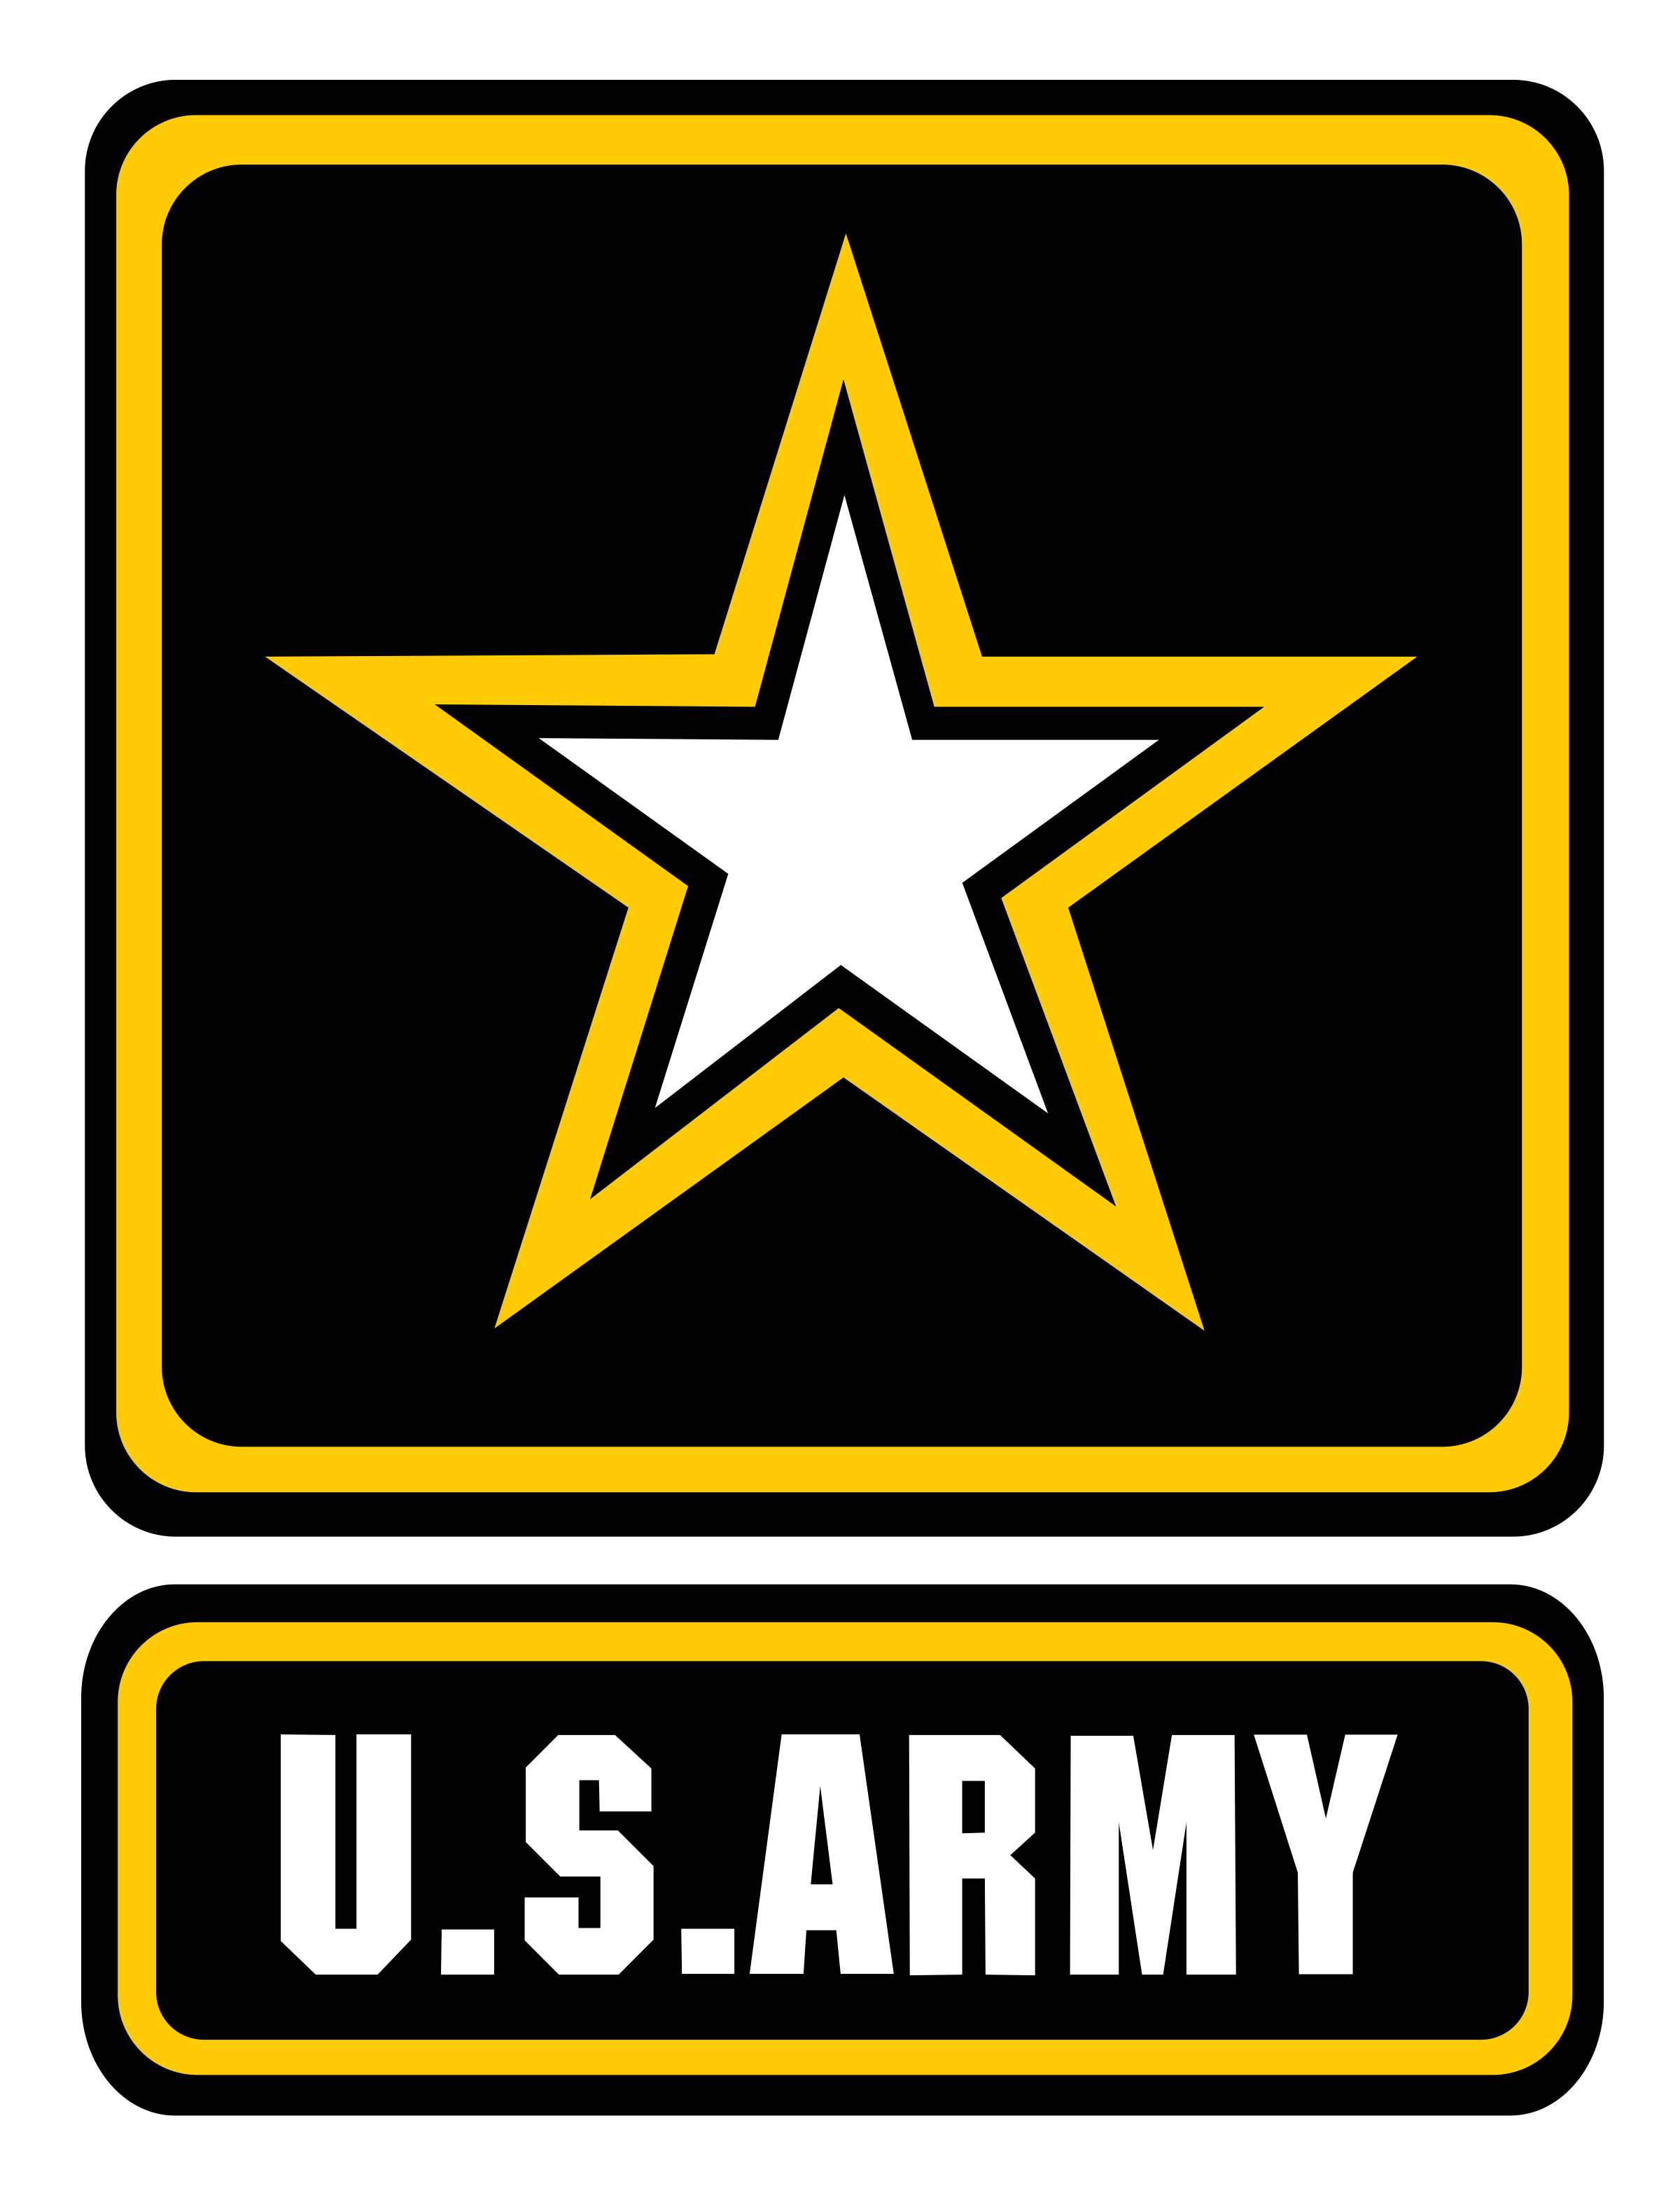 Us army logo png. U s transparent svg